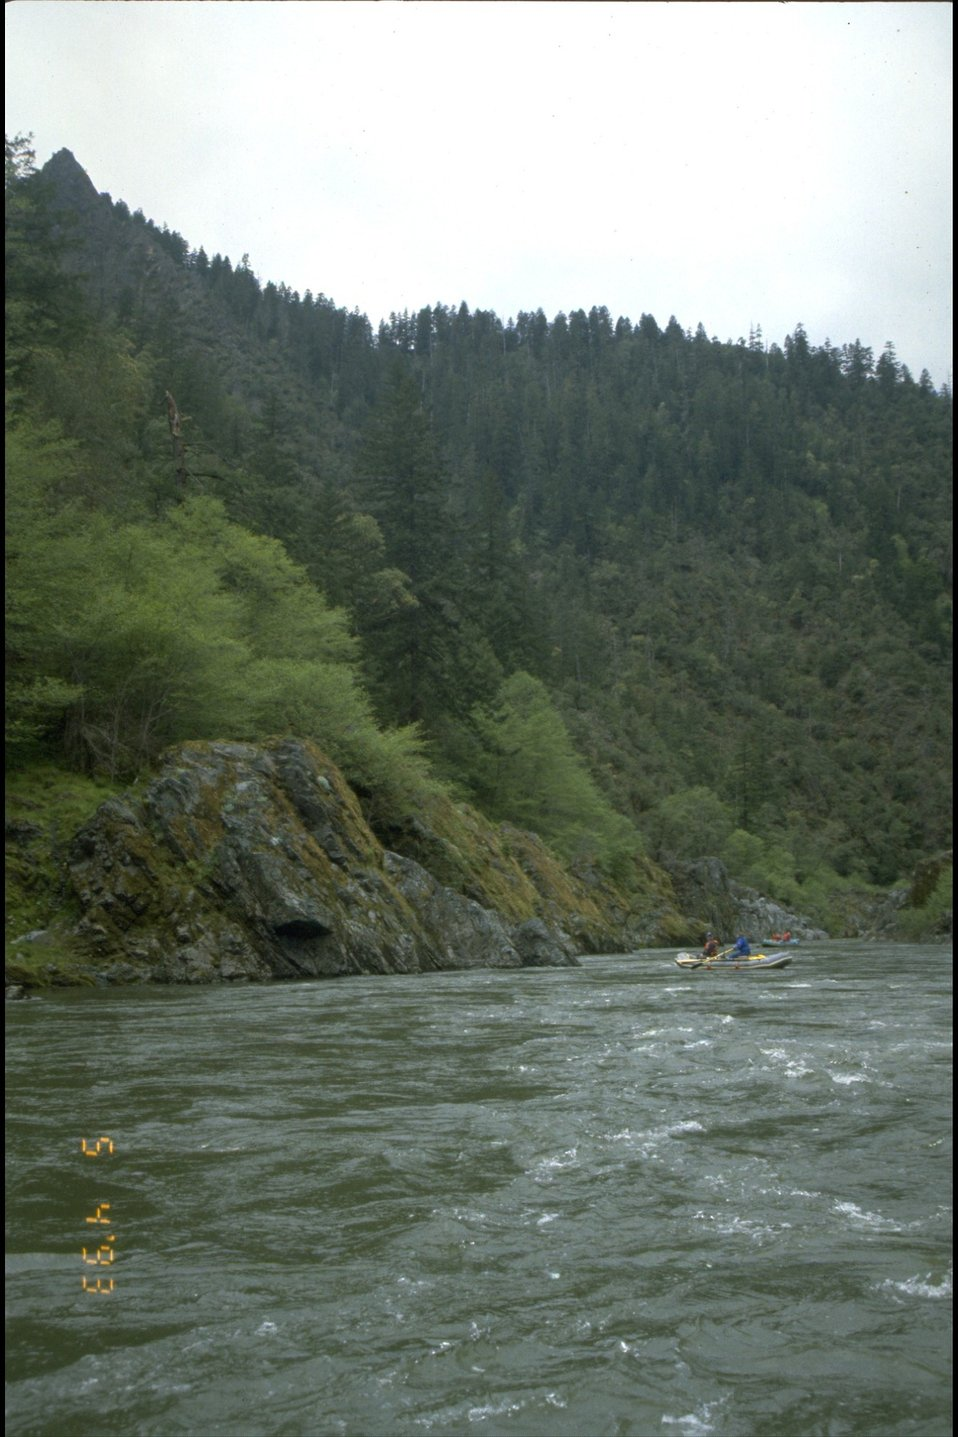 Mule Creek Canyon on the Wild section of the river.